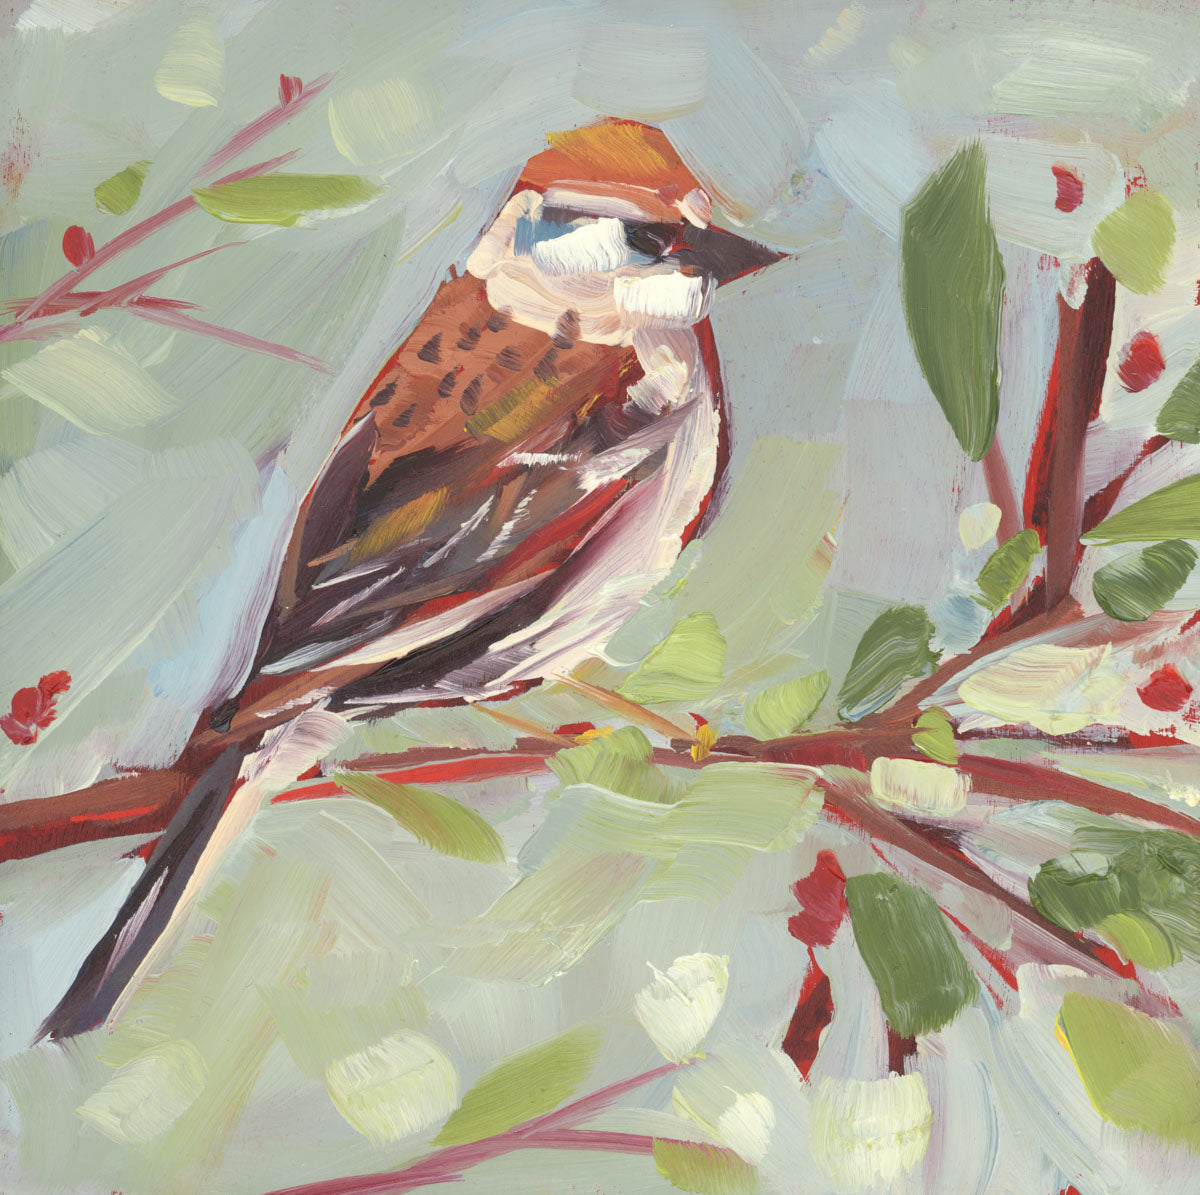 1380: Hey Chipping Sparrow, I See You